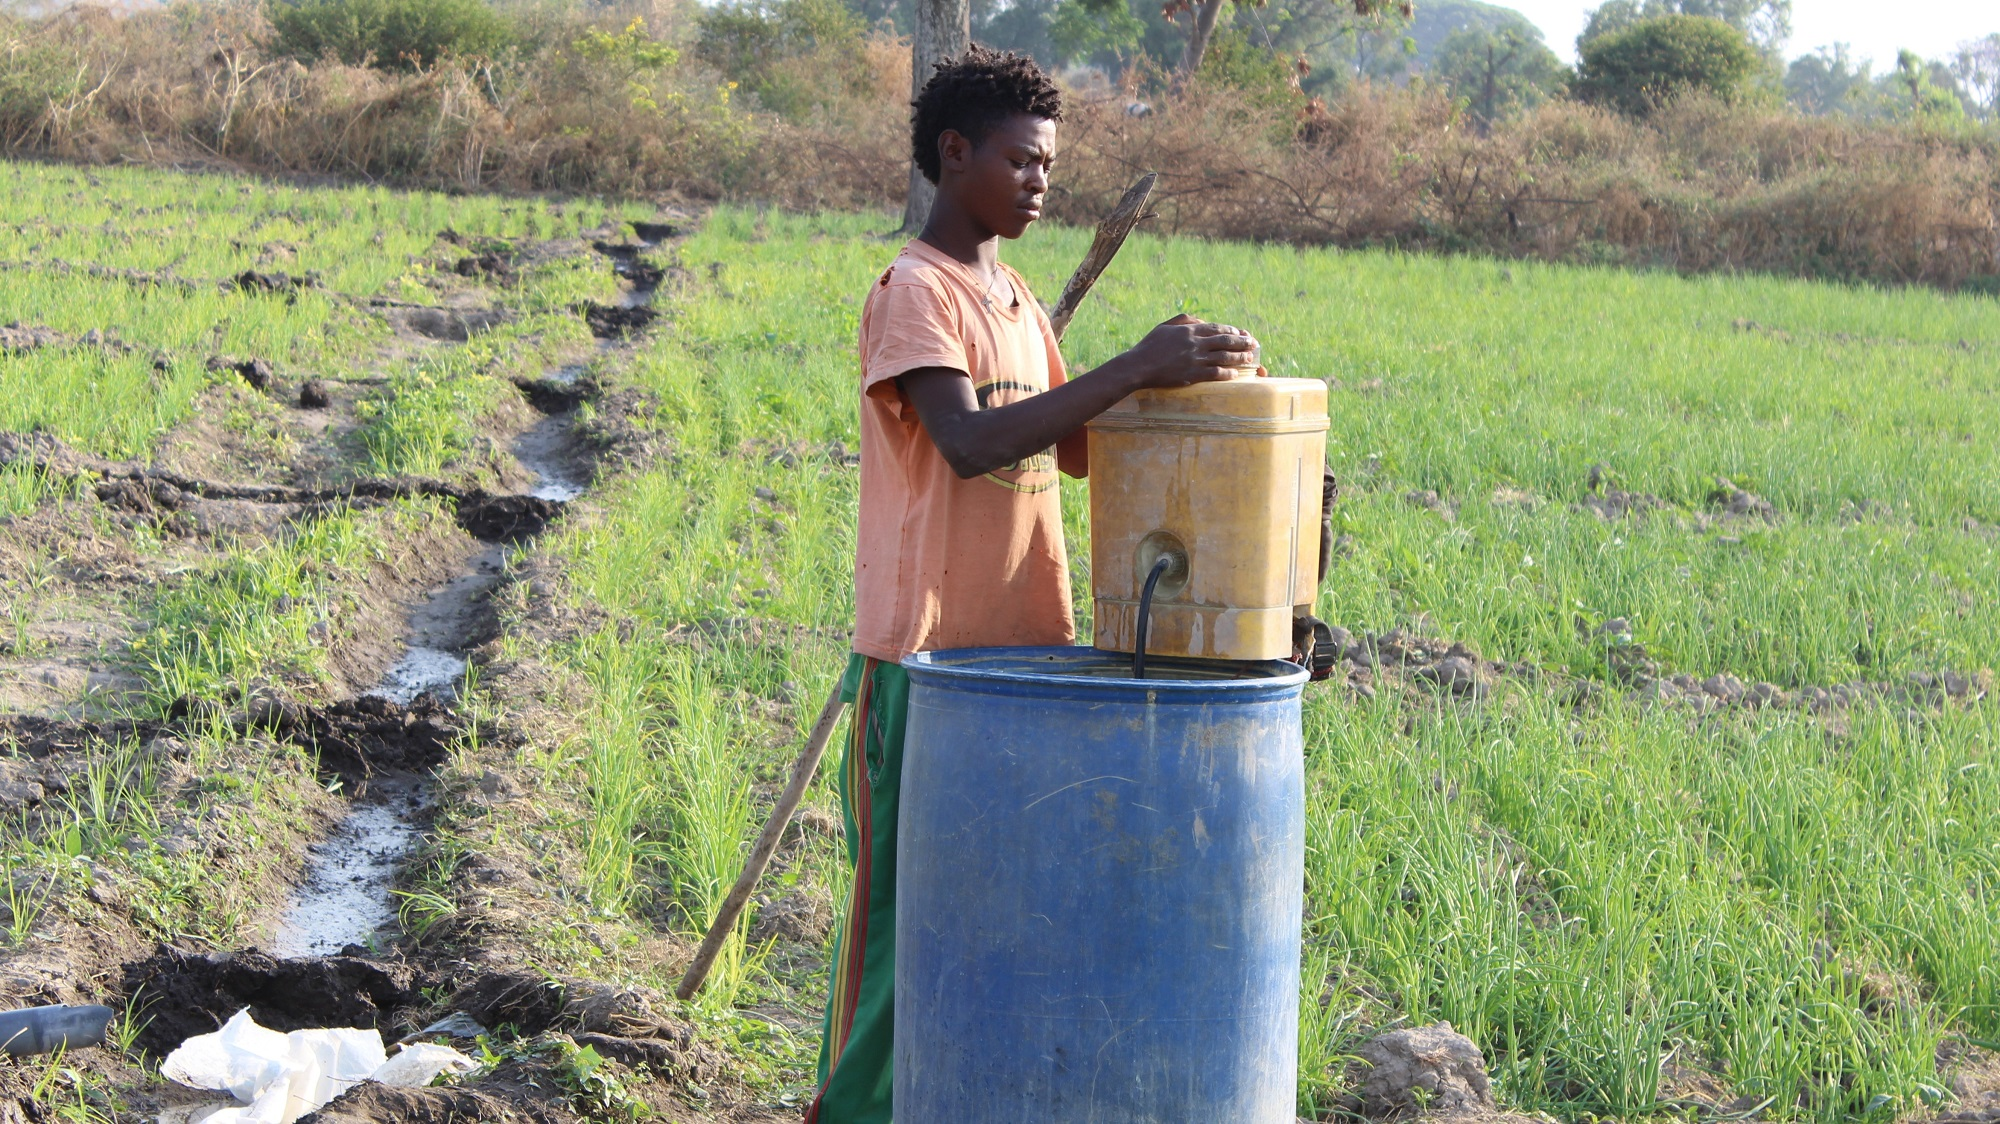 Handling pesticides without protection - credit PAN Ethiopia